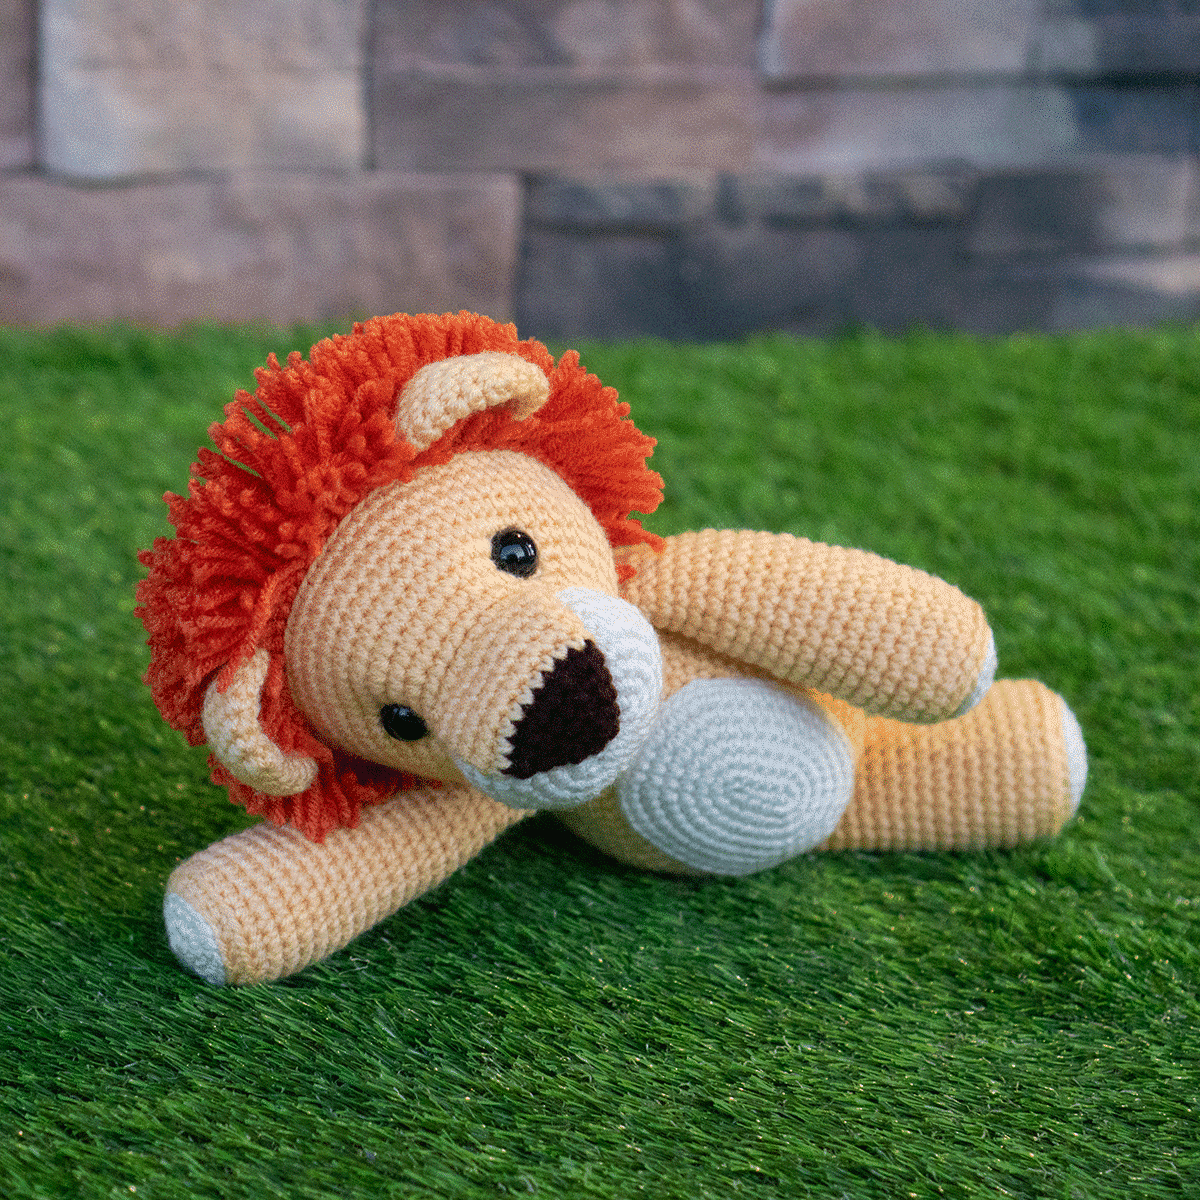 Lion Crochet PATTERN Amigurumi patterns pdf tutorial - TYRION the ... | 1200x1200